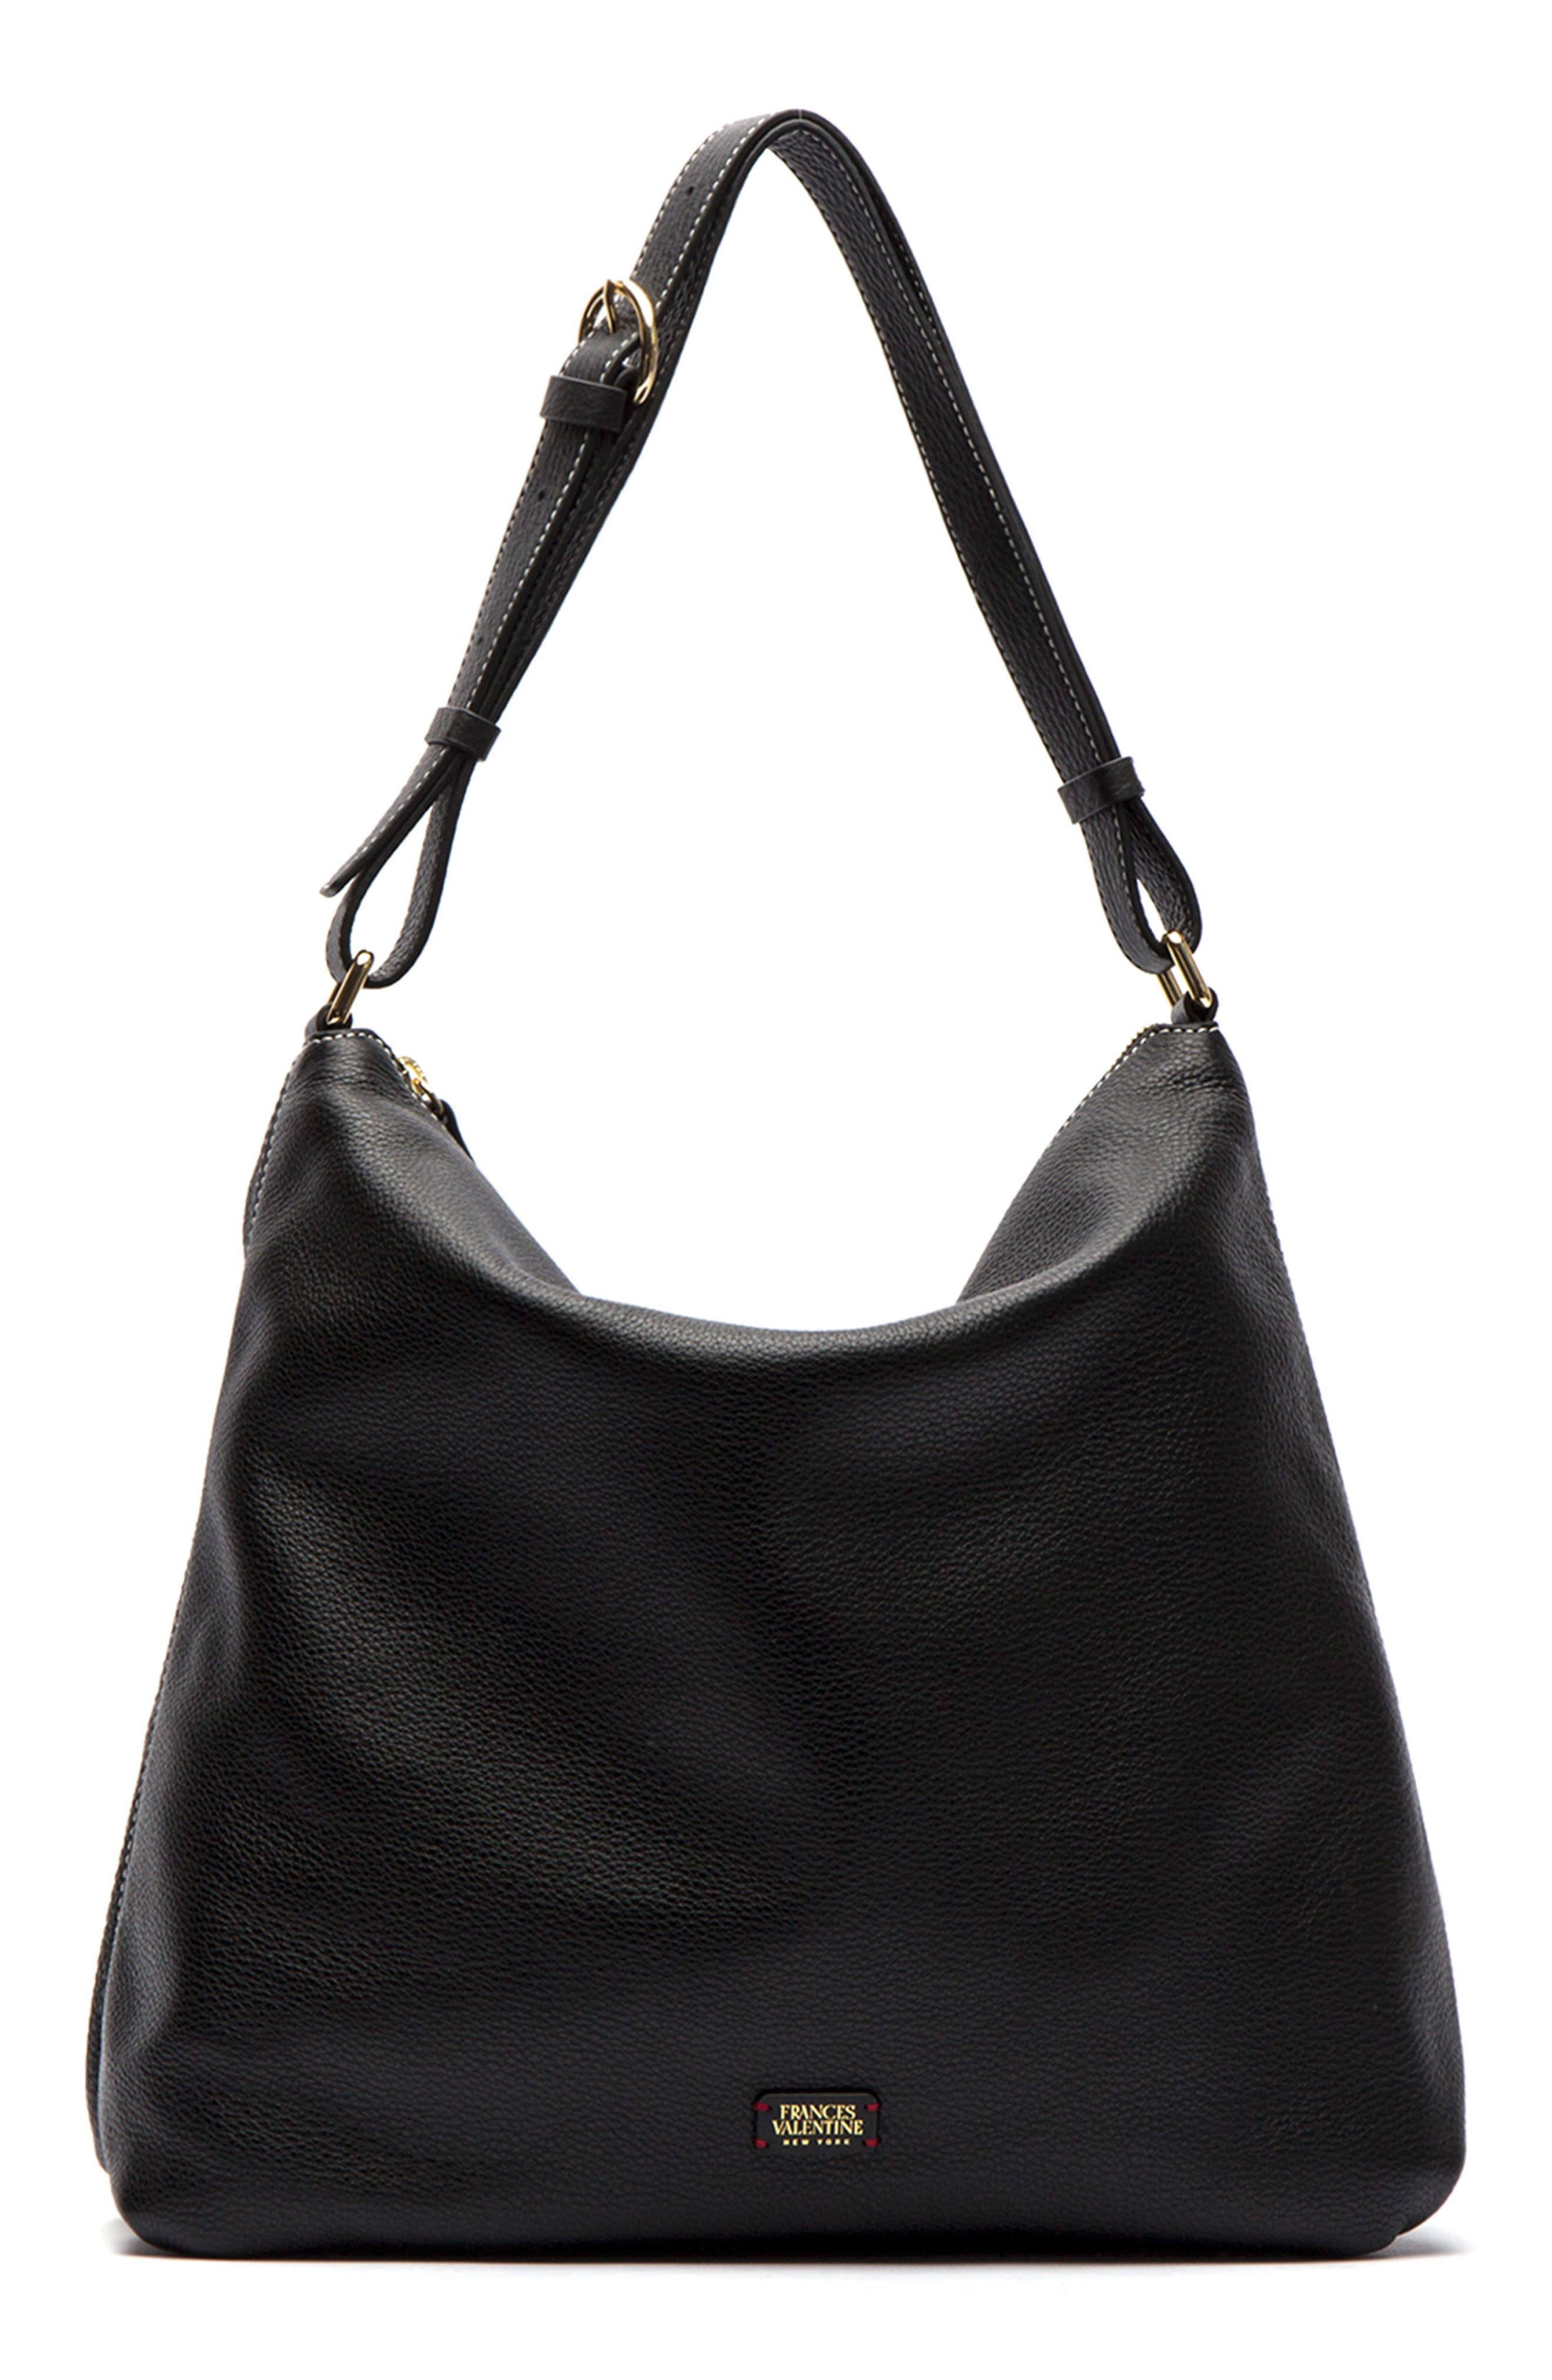 Frances Valentine Simone Slouchy Leather Hobo